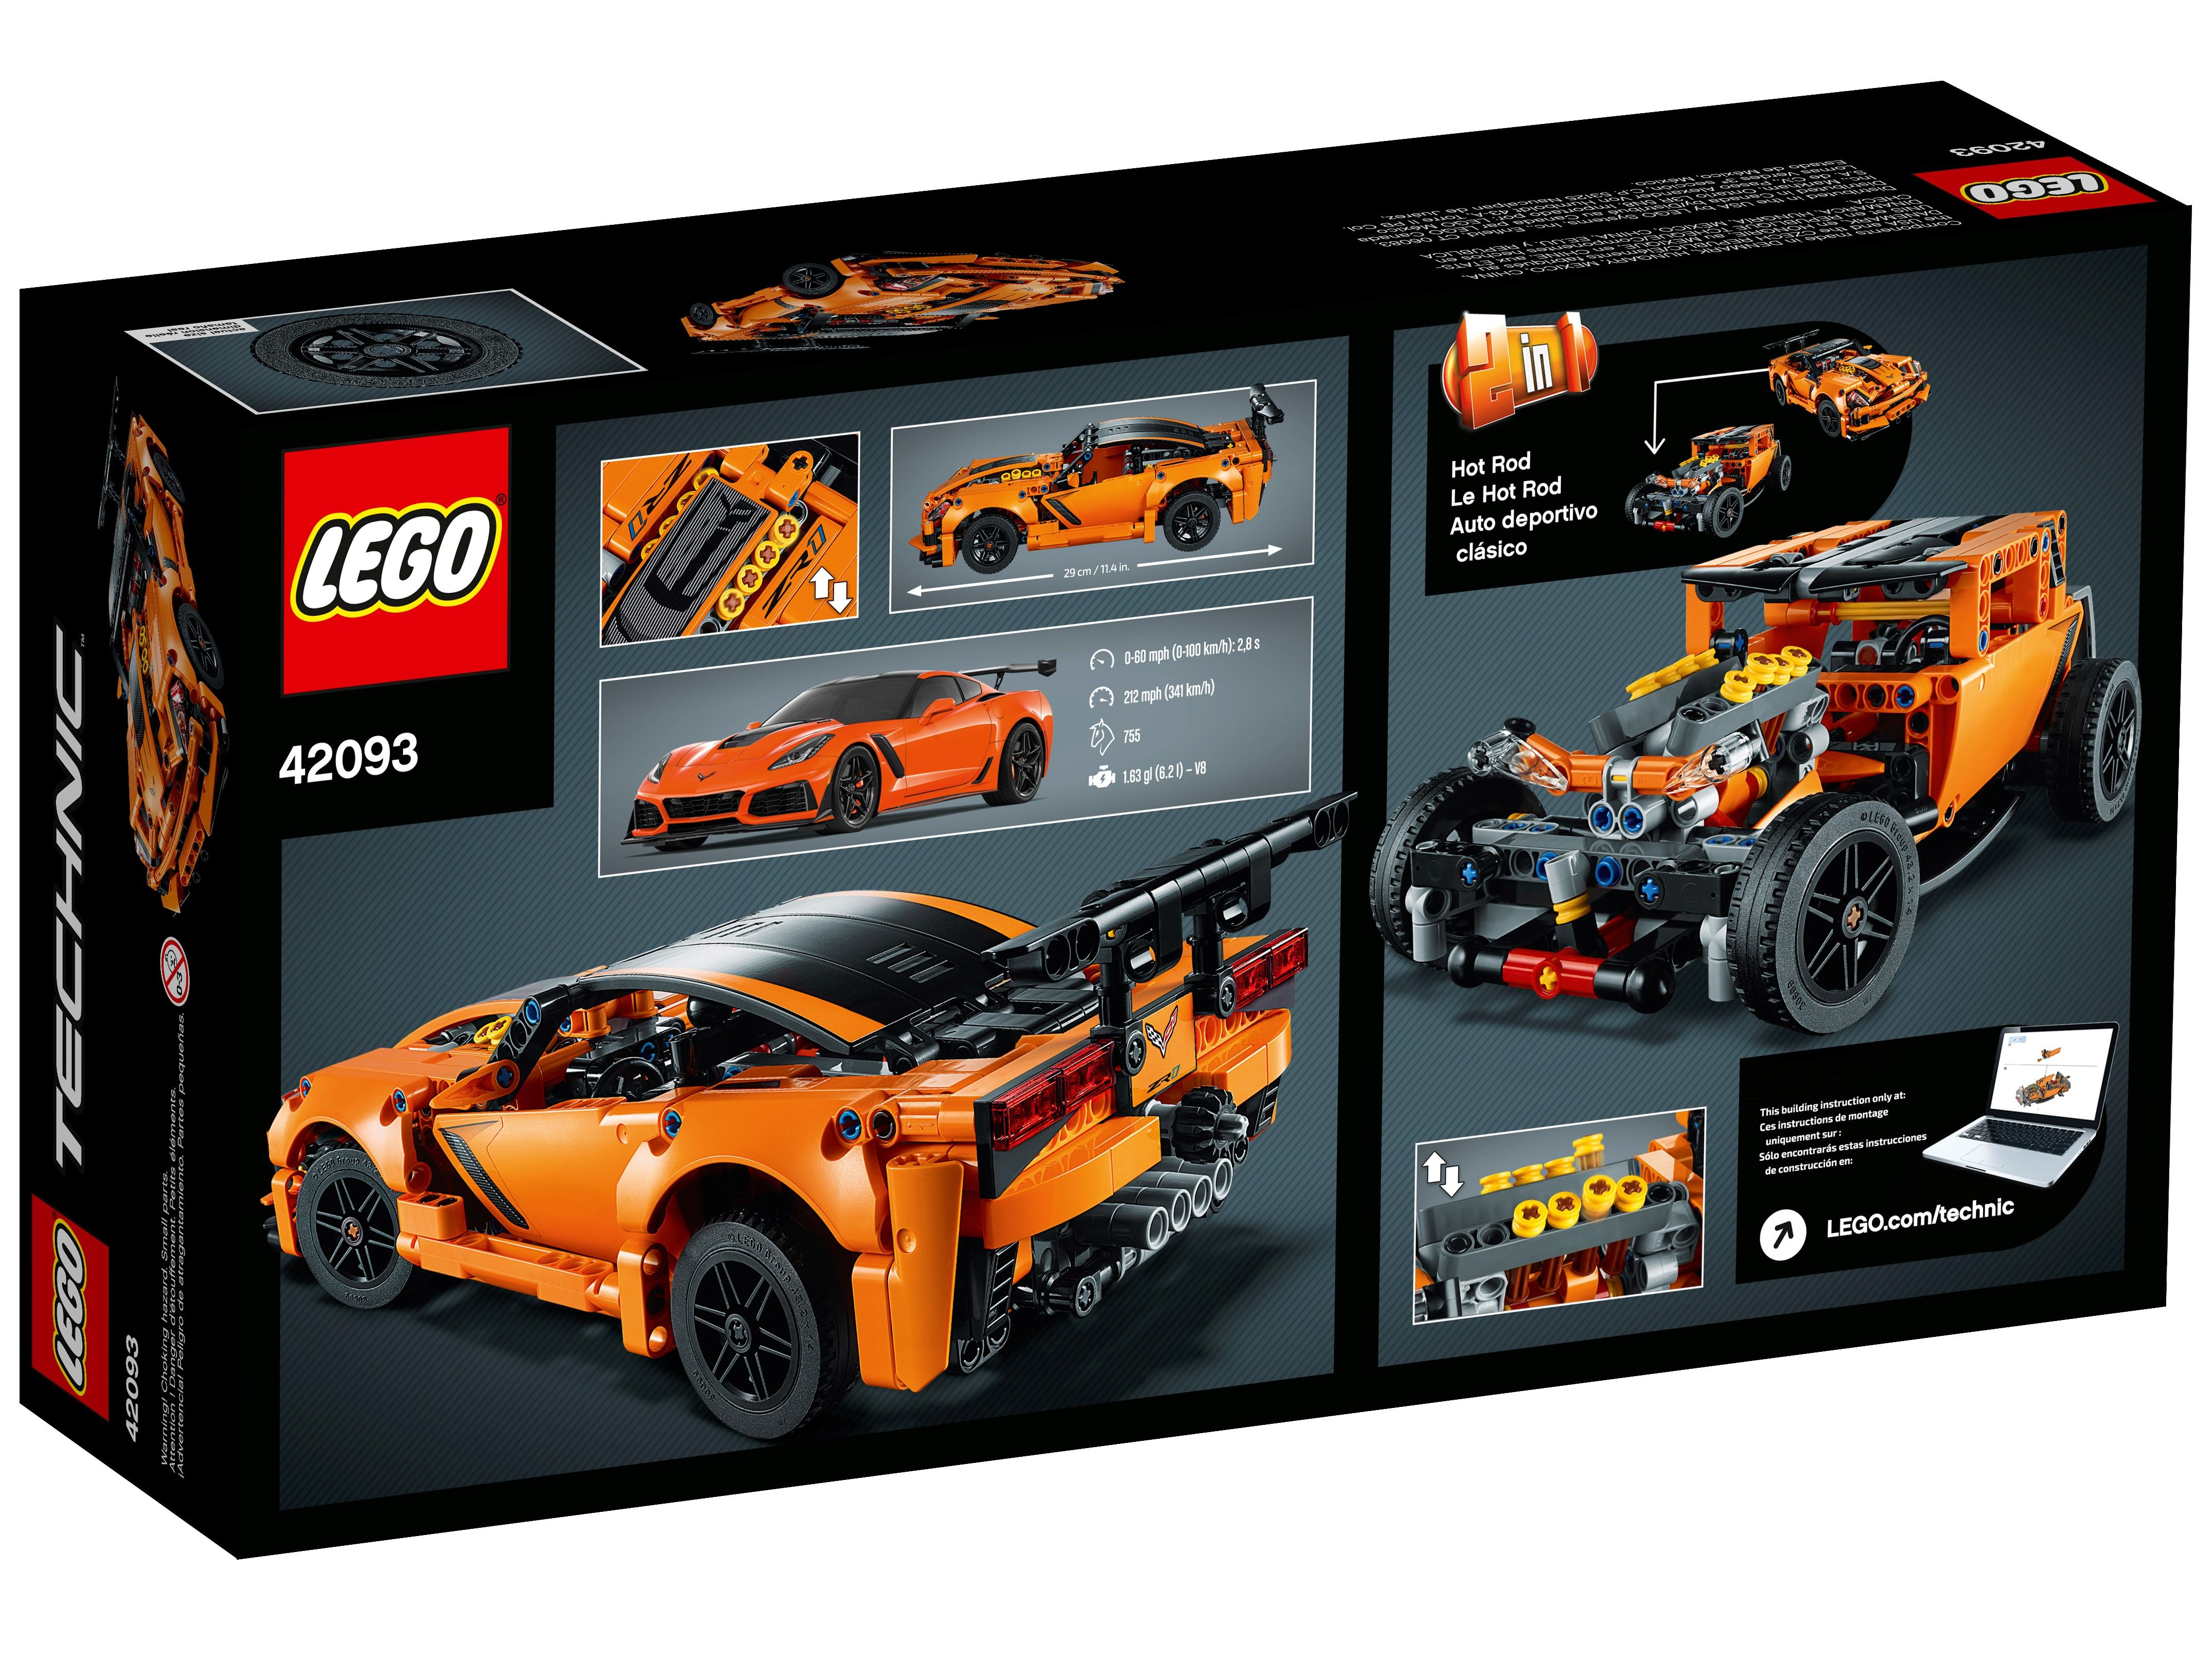 Chevrolet Corvette Zr1 42093 Technic Buy Online At The Official Lego Shop Us In 2020 Chevrolet Corvette Corvette Zr1 Lego Technic